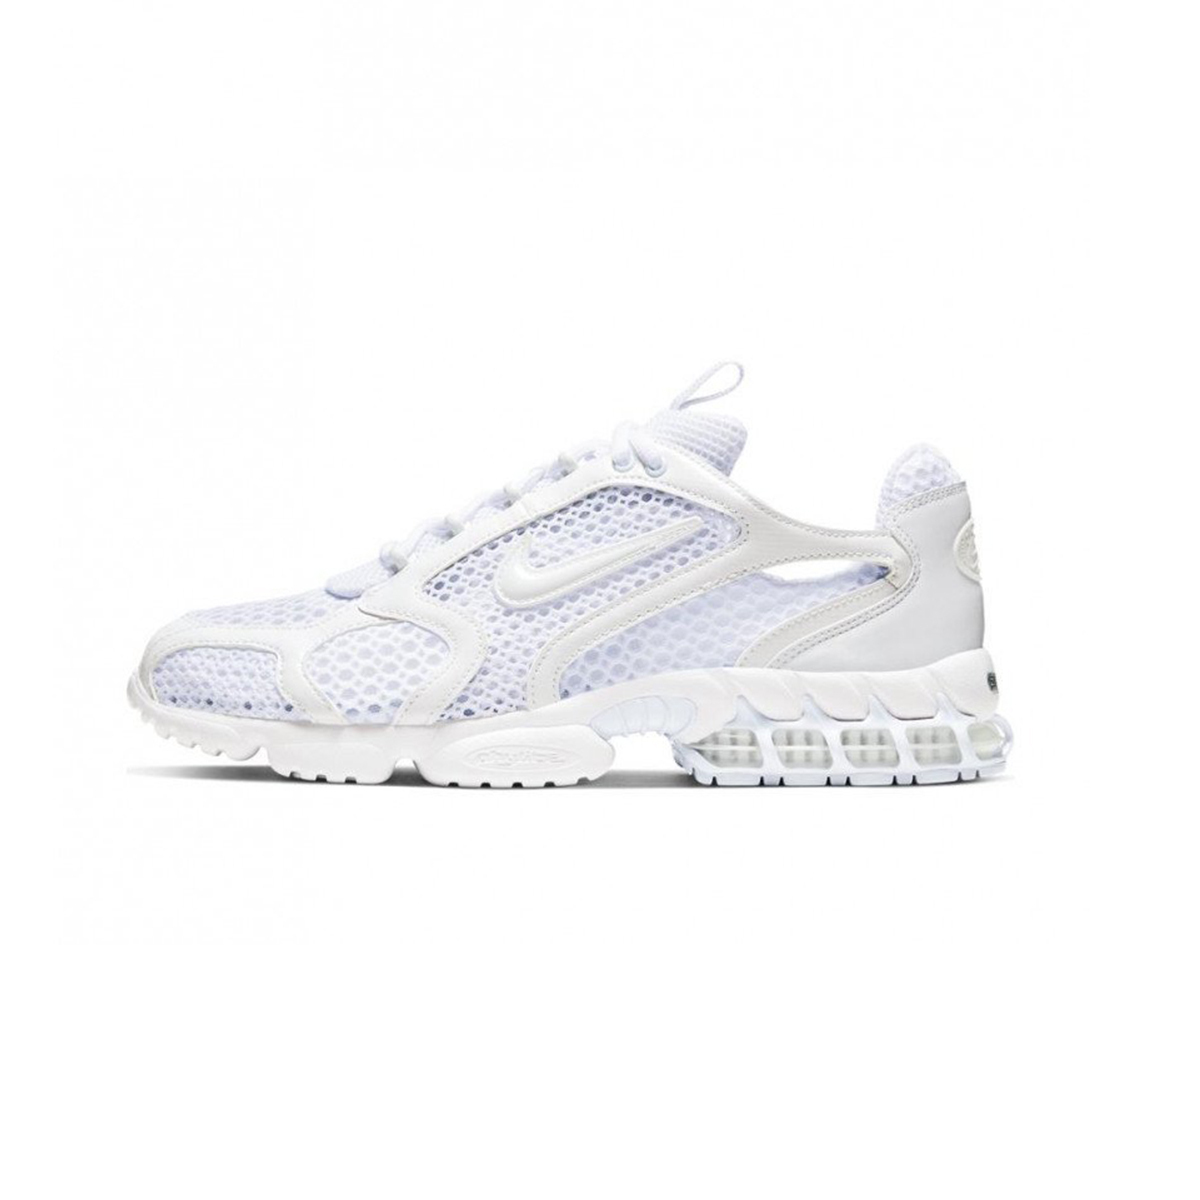 Primary image for Nike Air Zoom Spiridon Cage 2 (Triple White/ White) Men 8-13